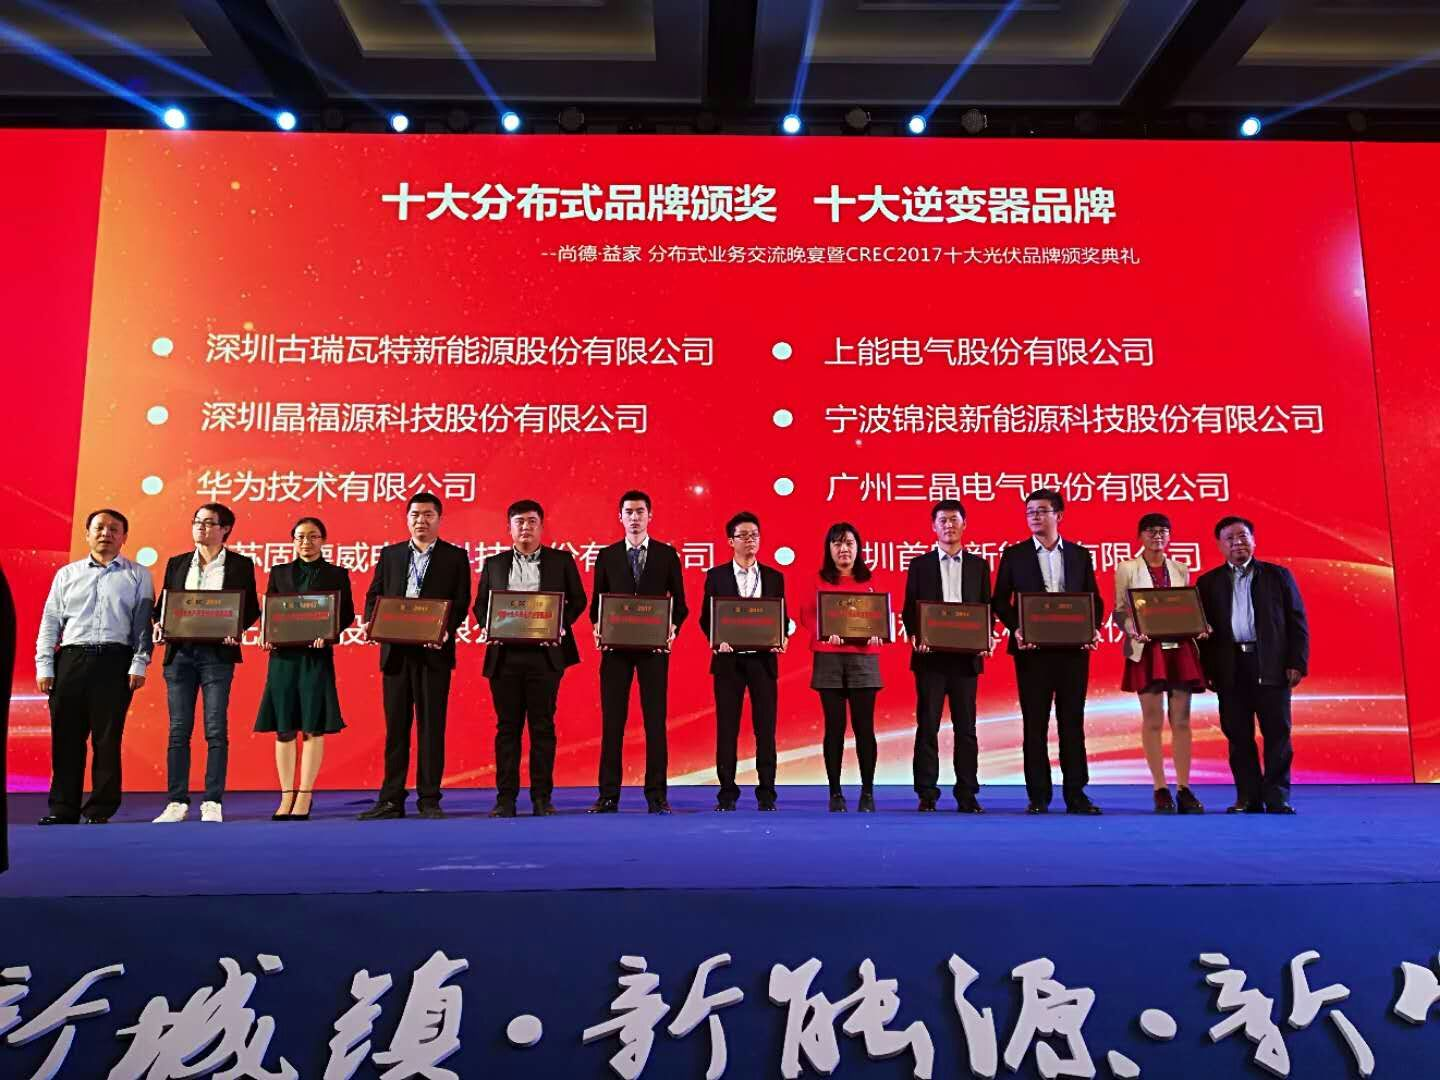 Company news-Growatt won the No.1 award of CREC in China residential & distributed PV market